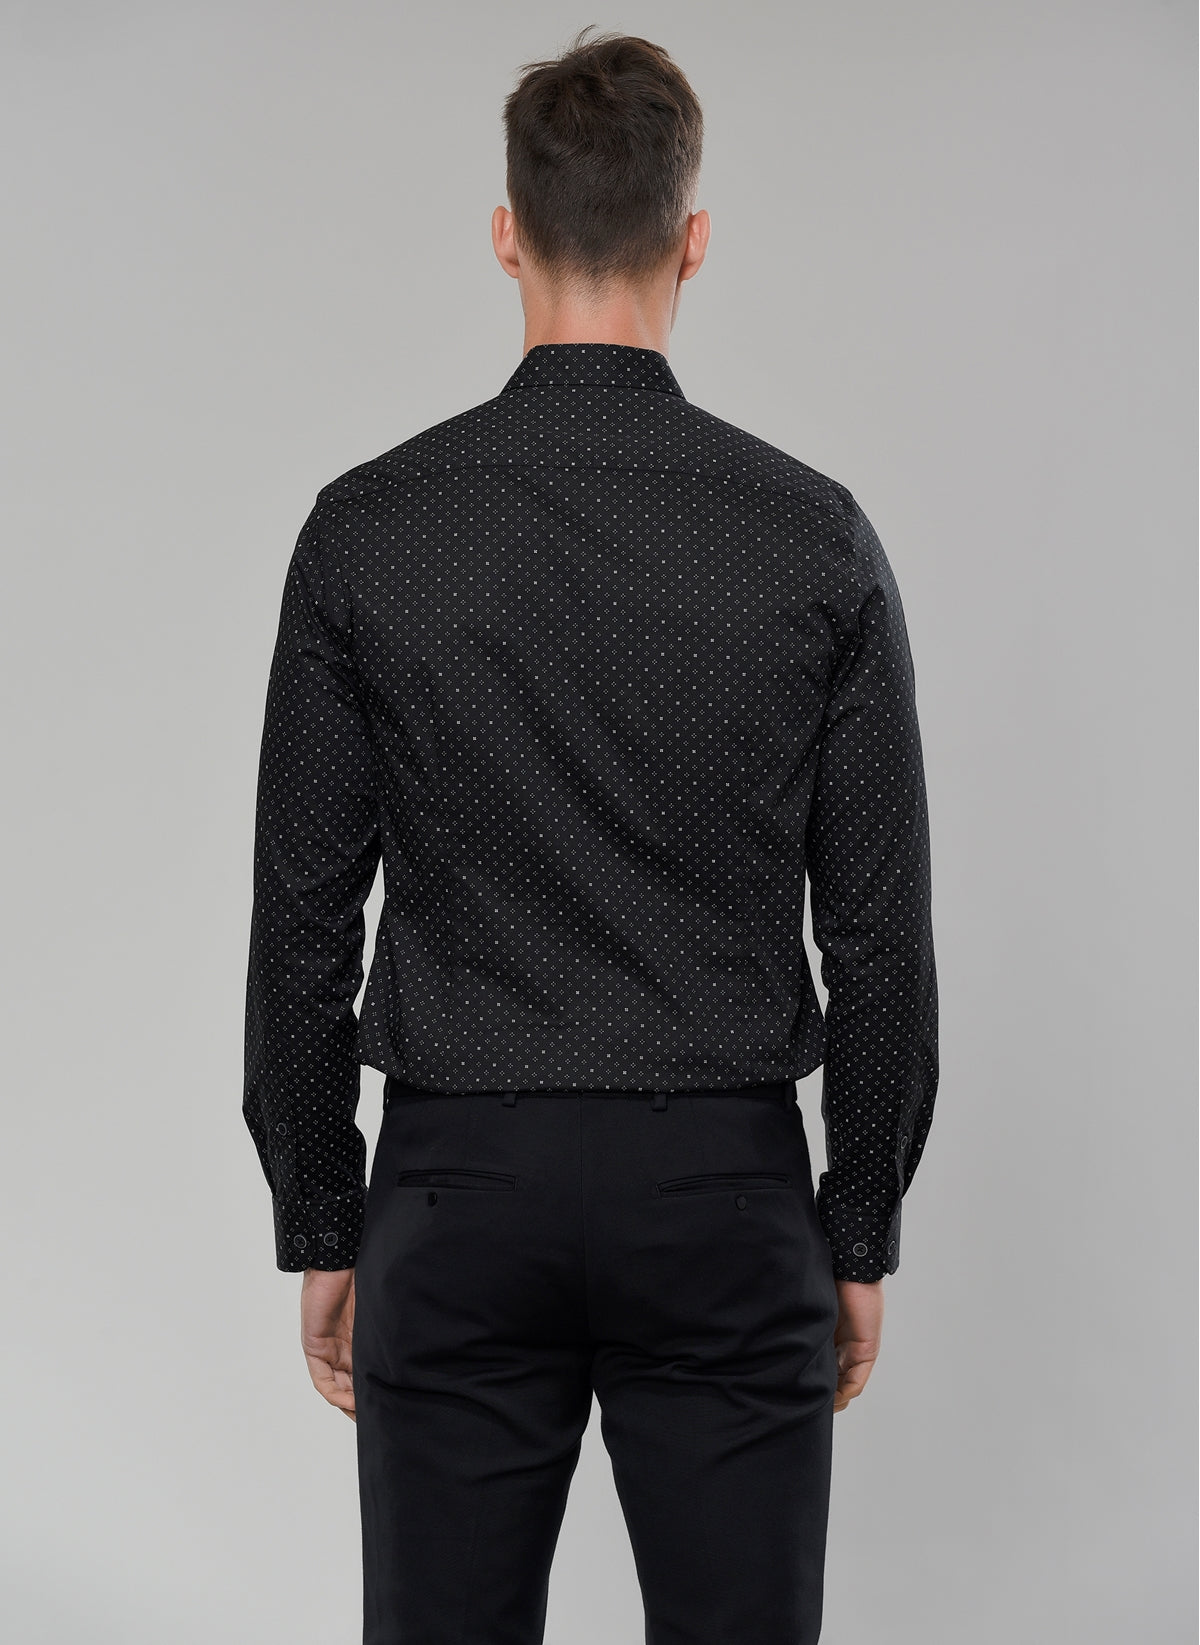 Printed Stretch Shirt in Black